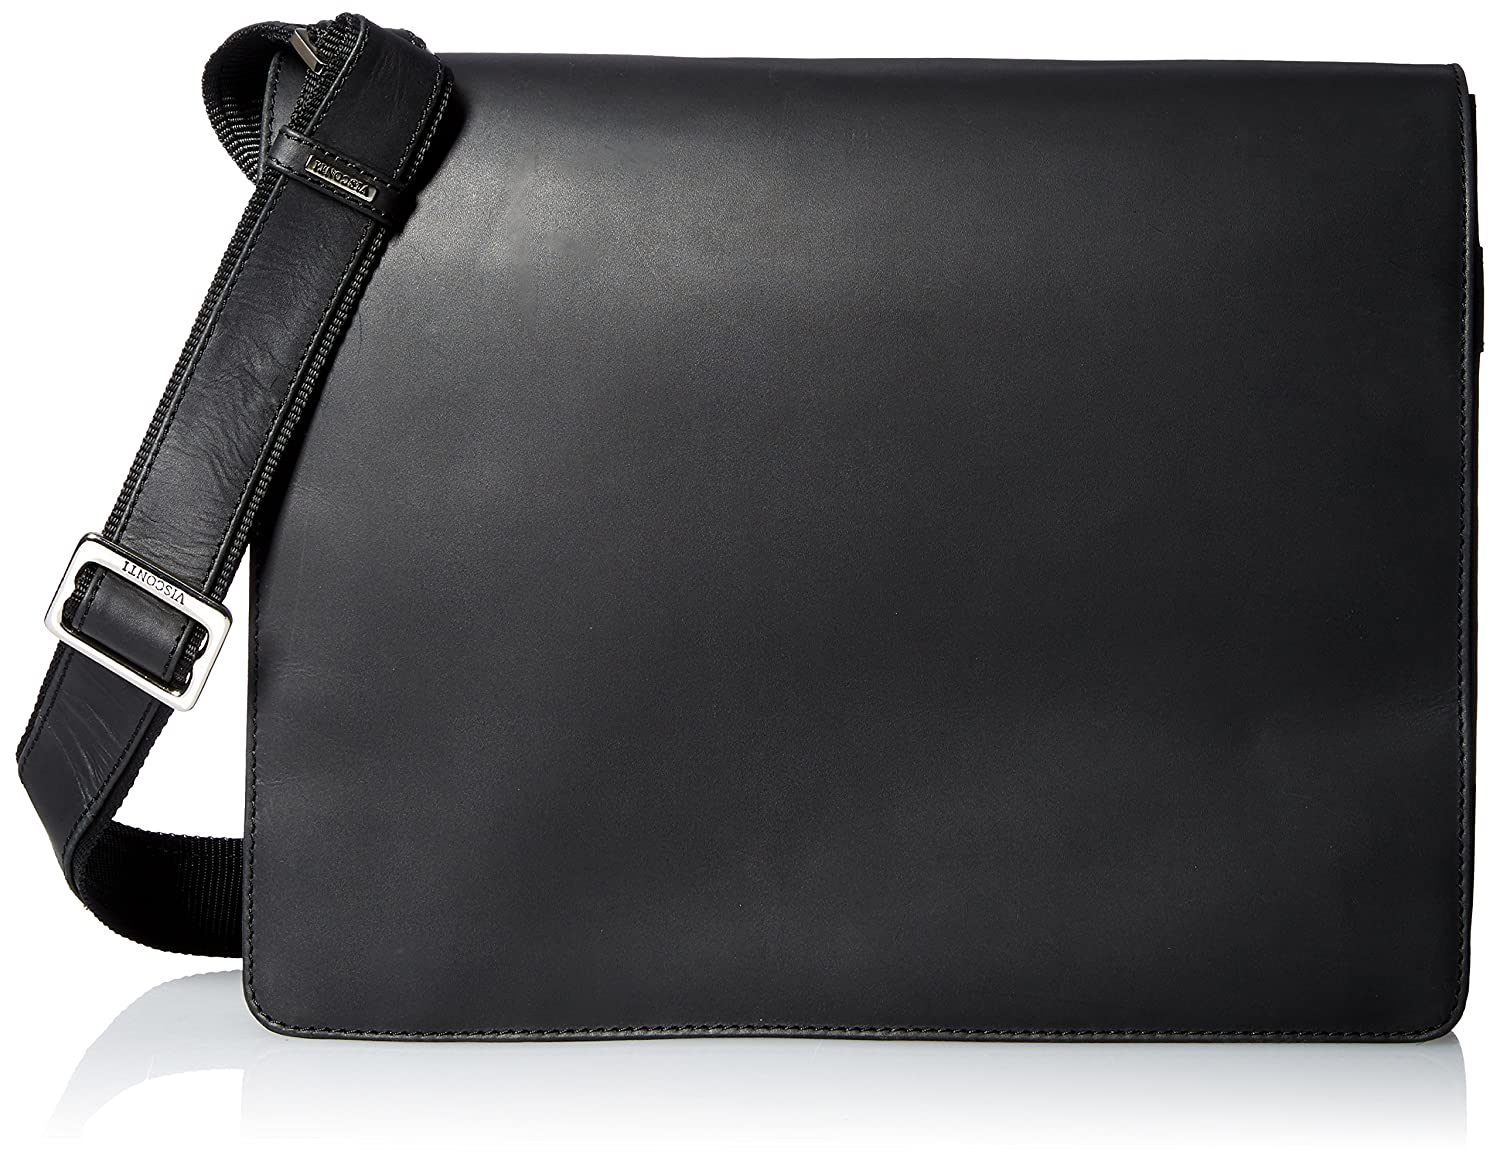 d7f6aef150a6 Visconti Leather Distressed Messenger Bag Harvard Collection, Black